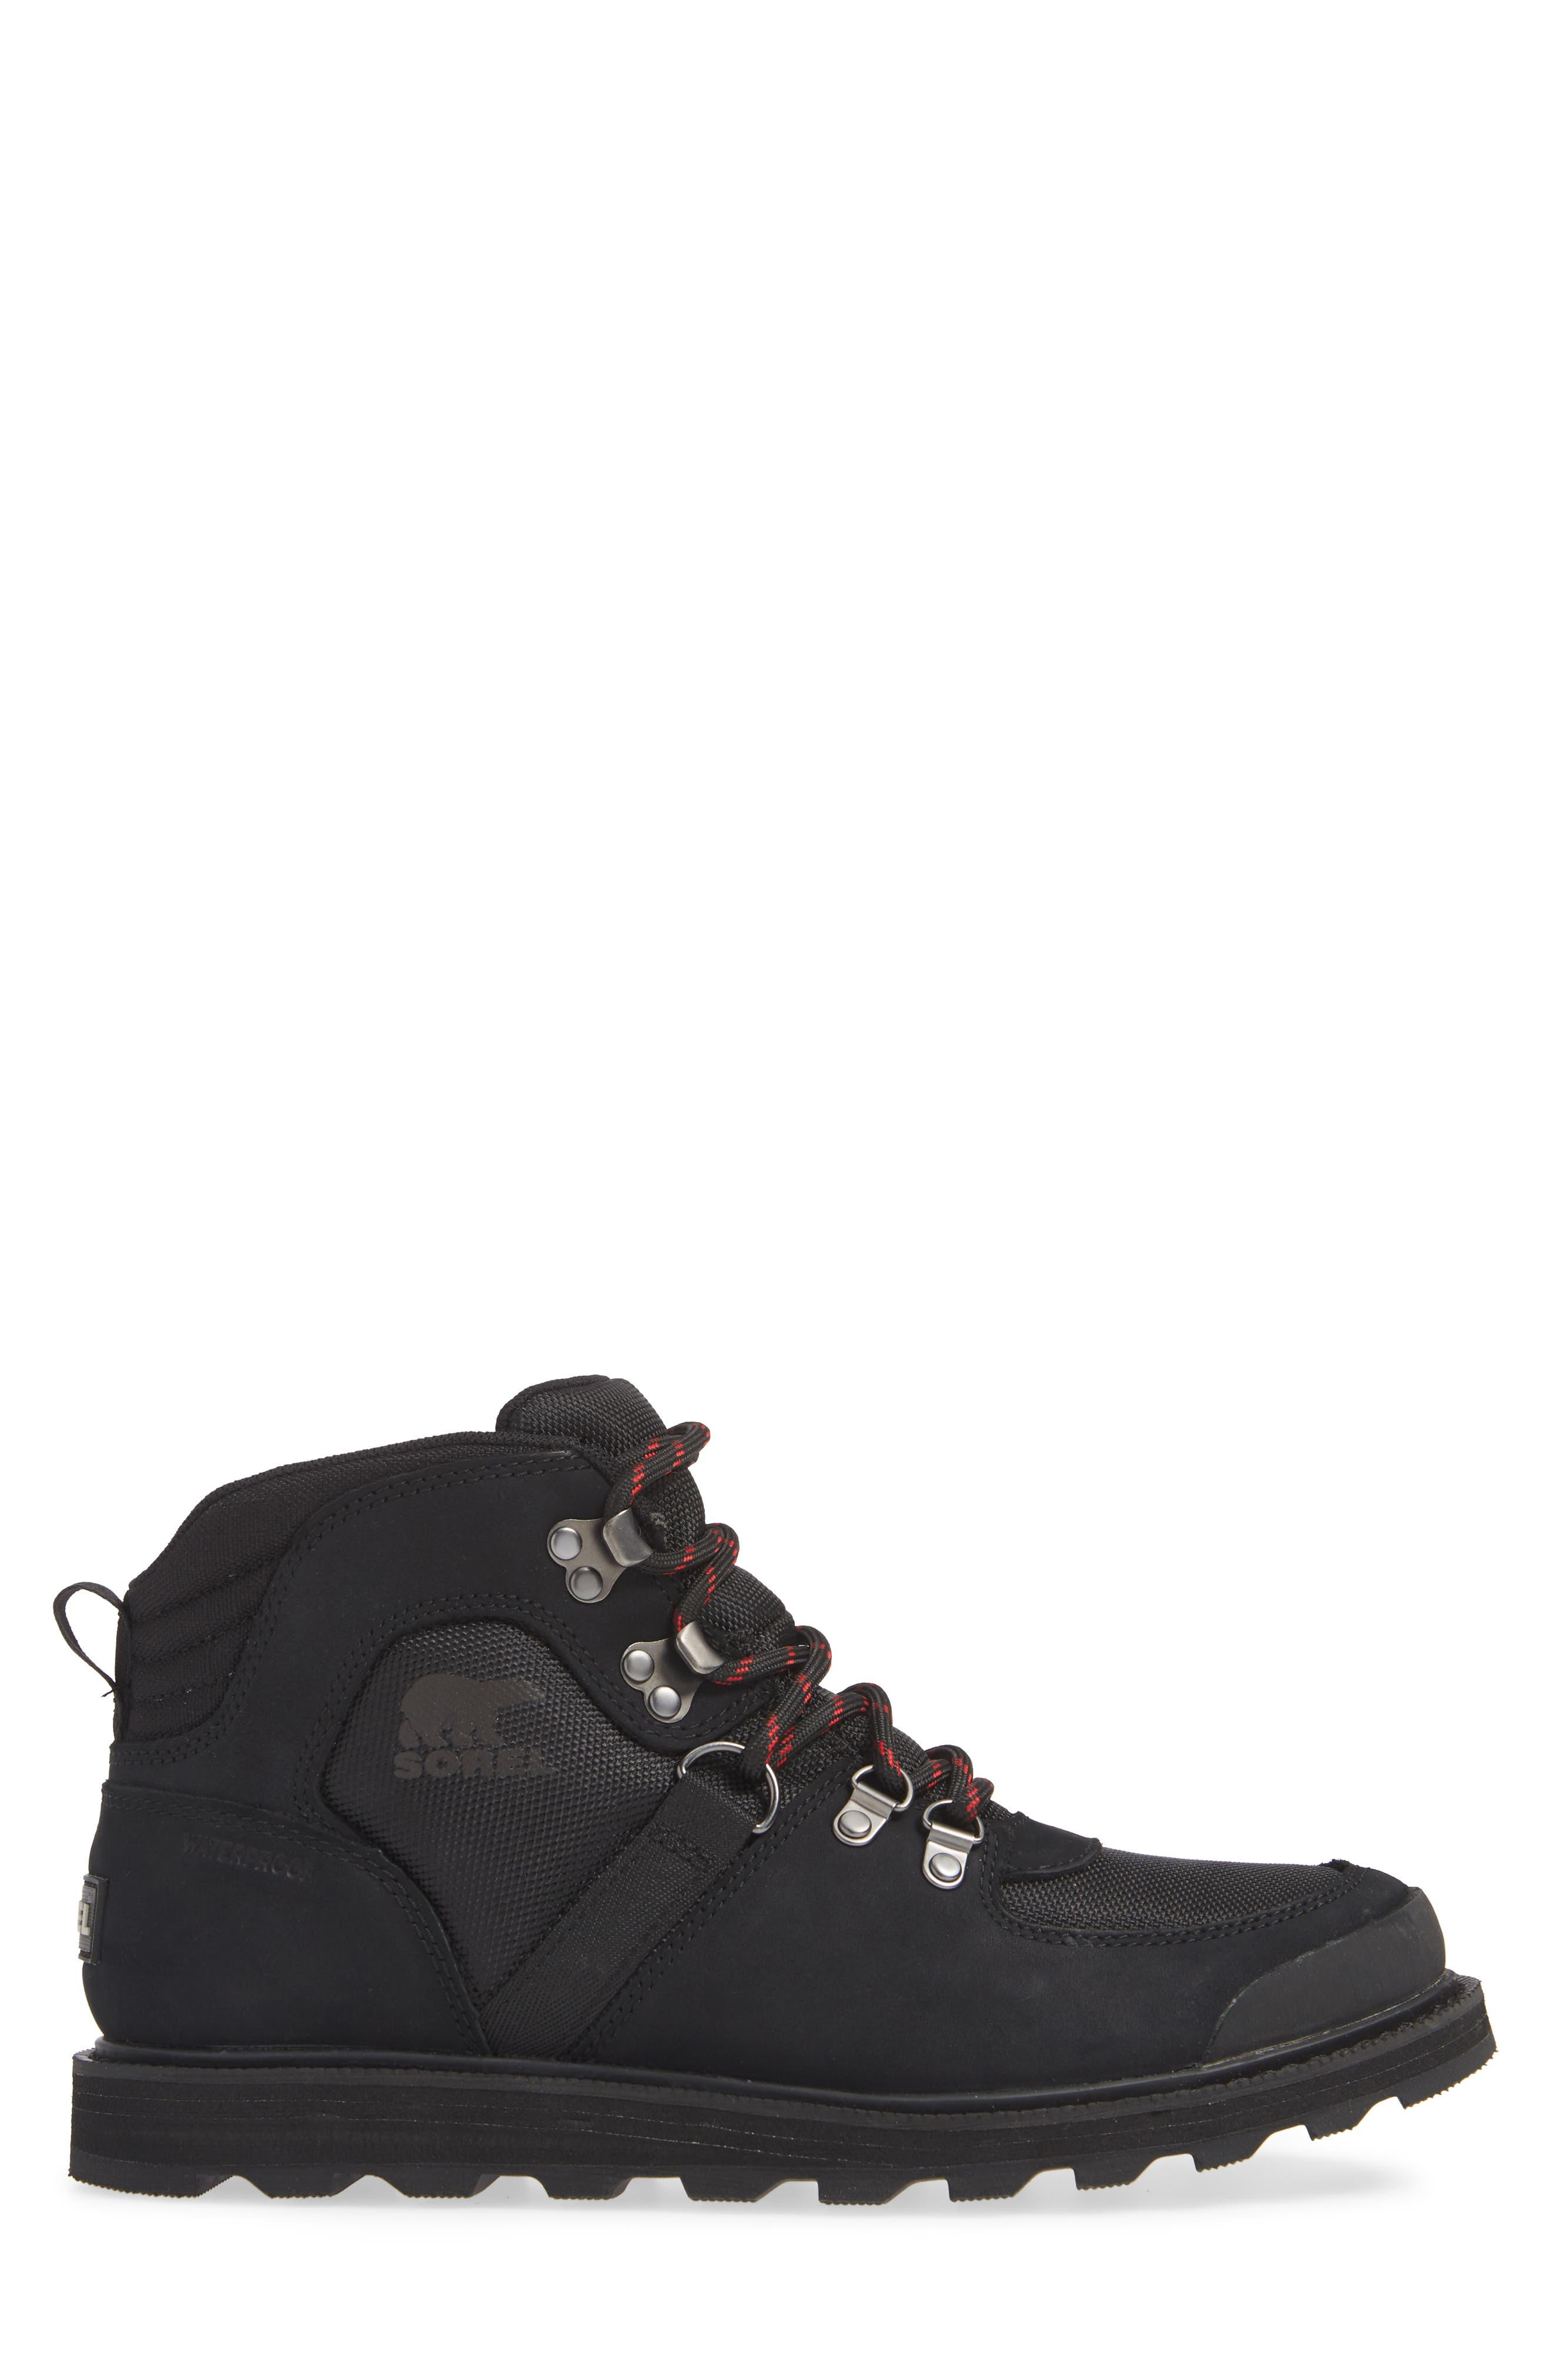 Madson Sport Waterproof Hiking Boot,                             Alternate thumbnail 3, color,                             BLACK